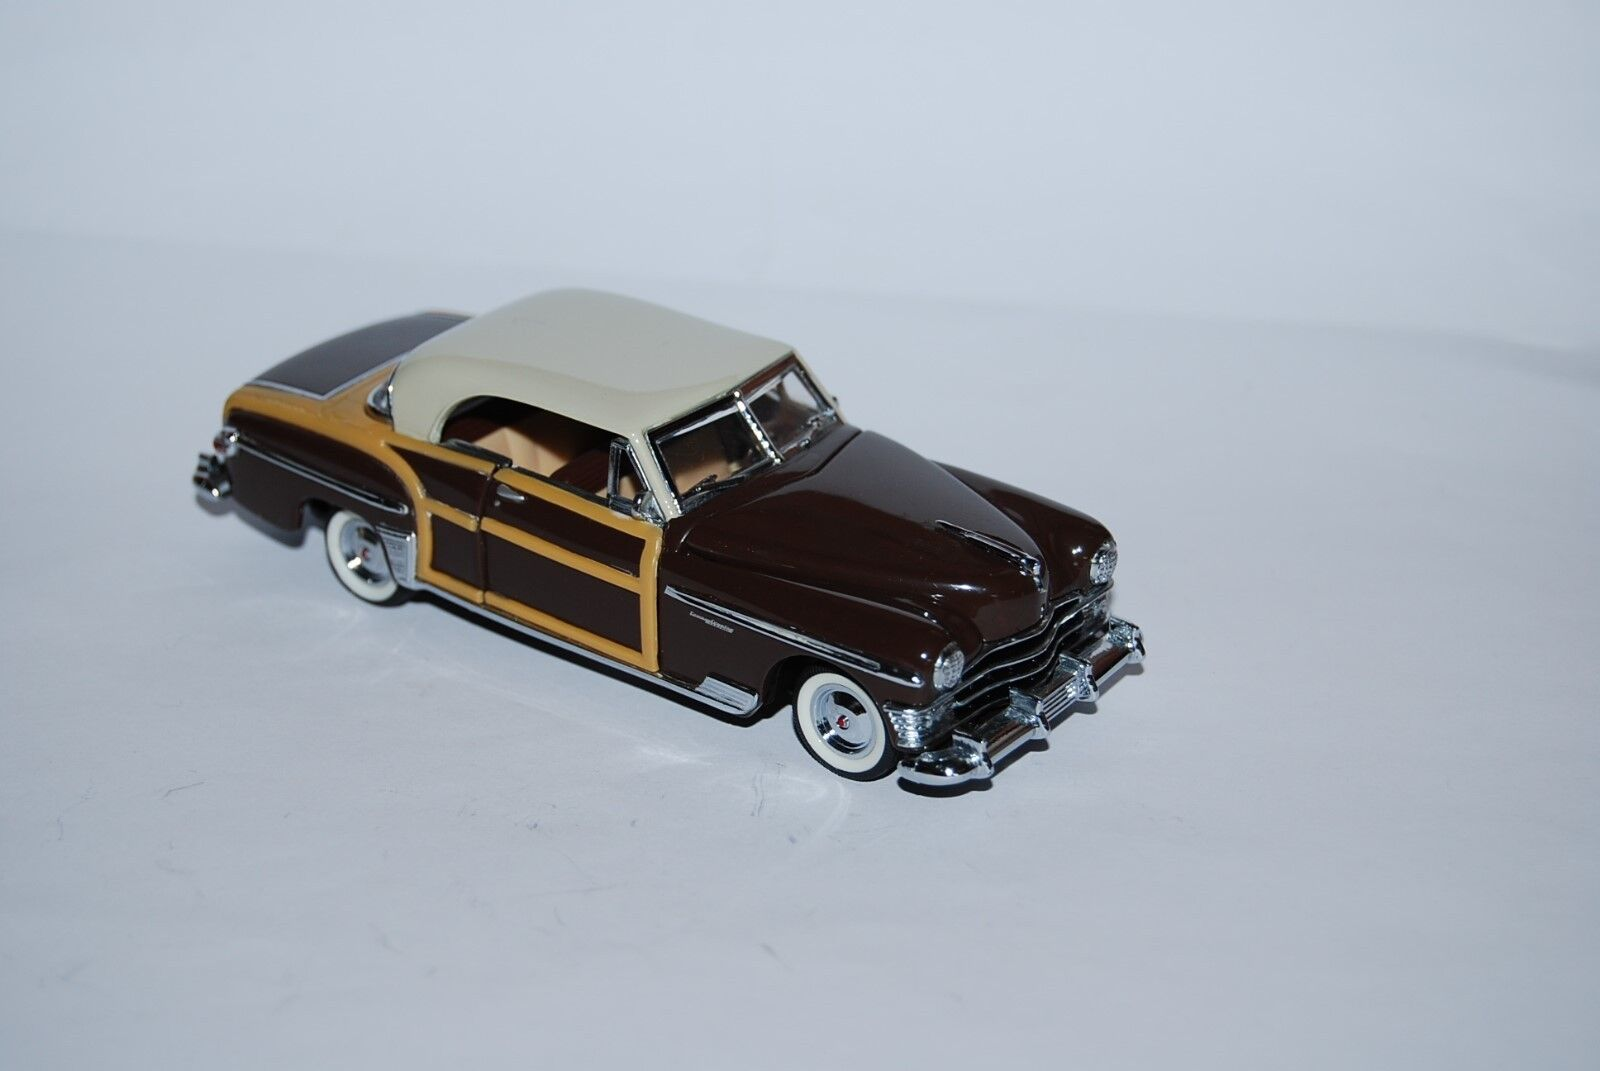 FRANKLIN MINT CHRYSLER TOWN ET COUNTRY 1950 SCALE 1 43